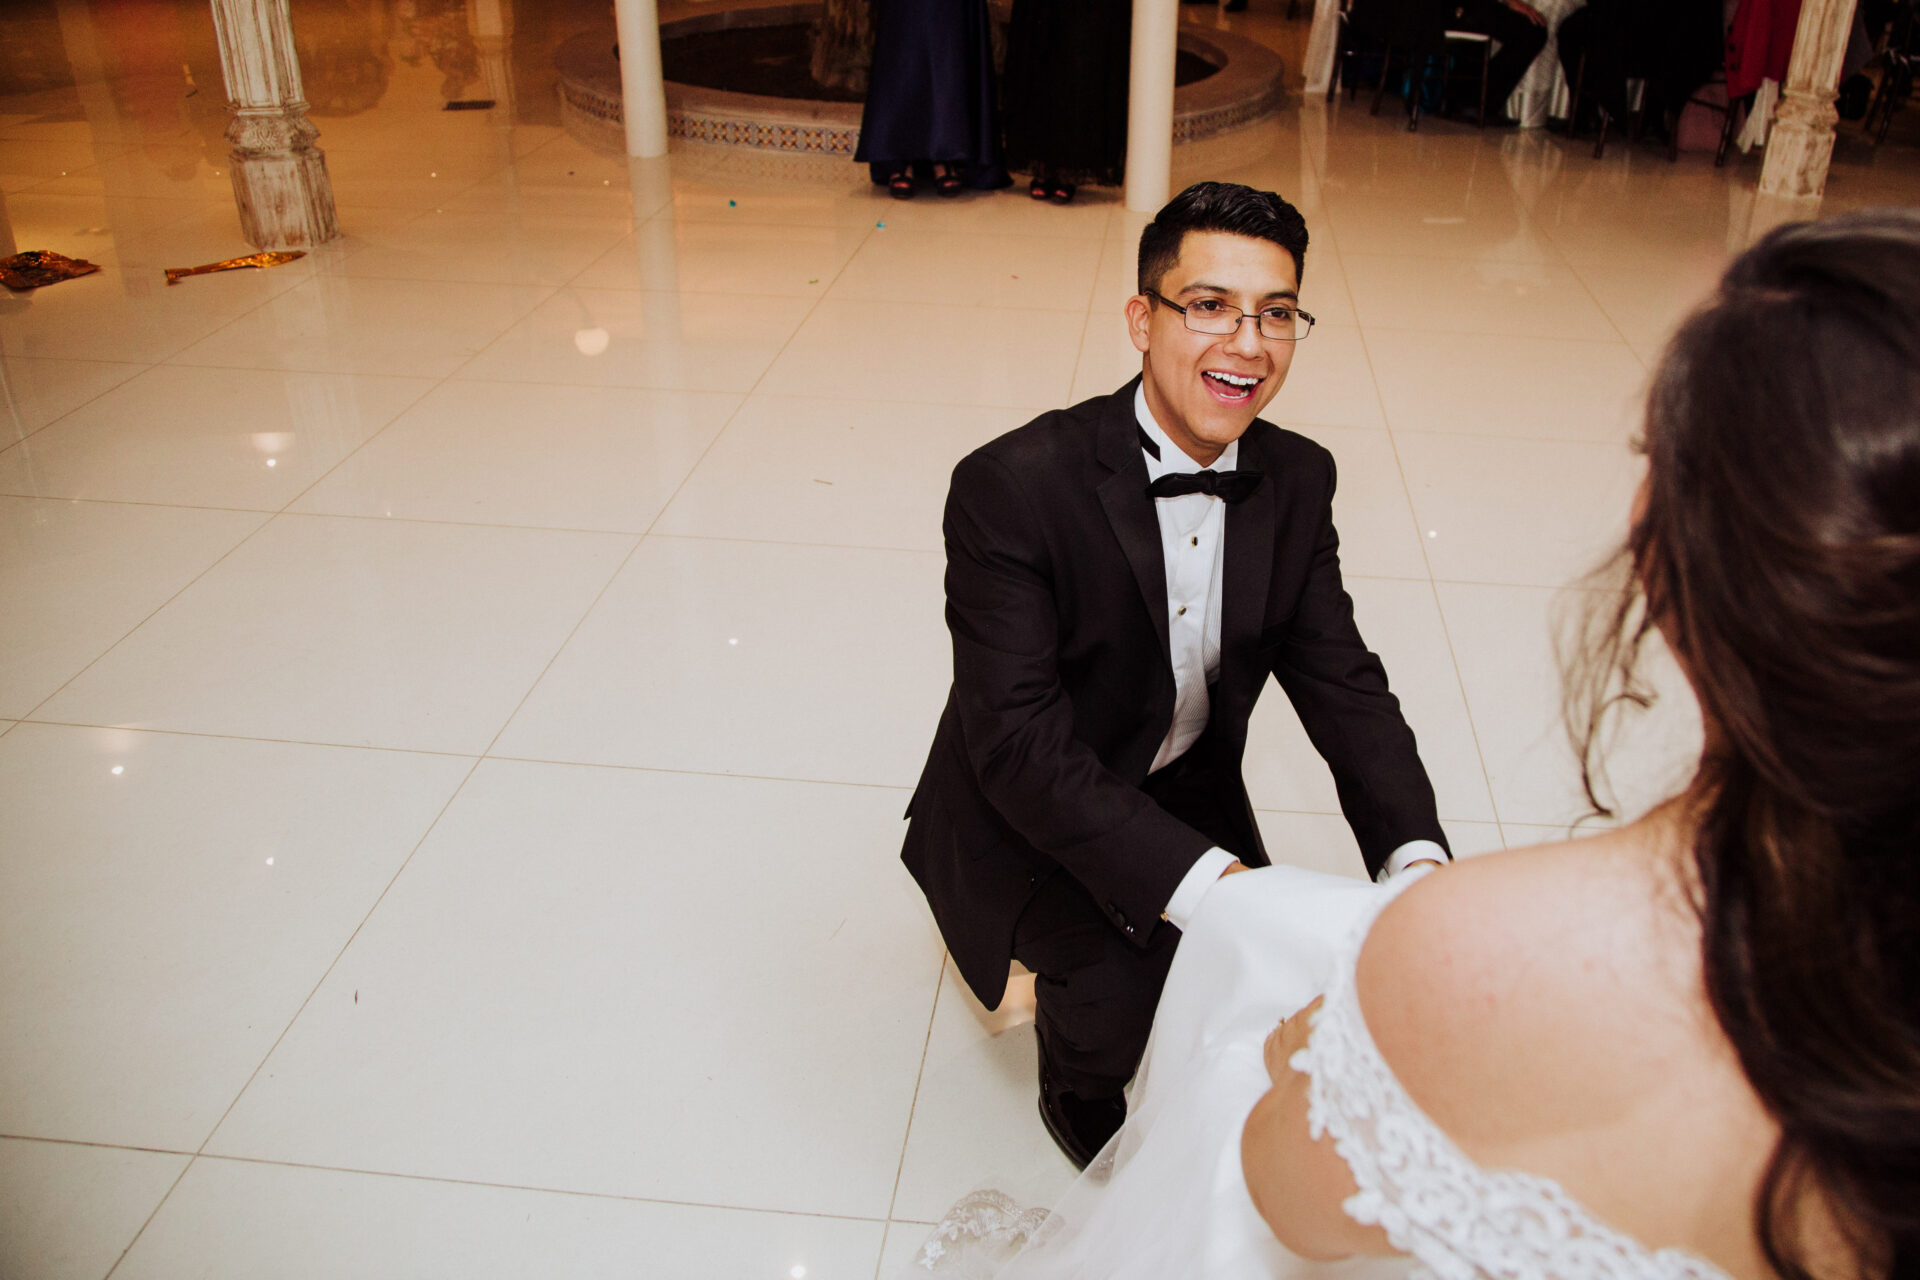 javier_noriega_fotografo_bodas_zacatecas_chihuahua_wedding_photographer30